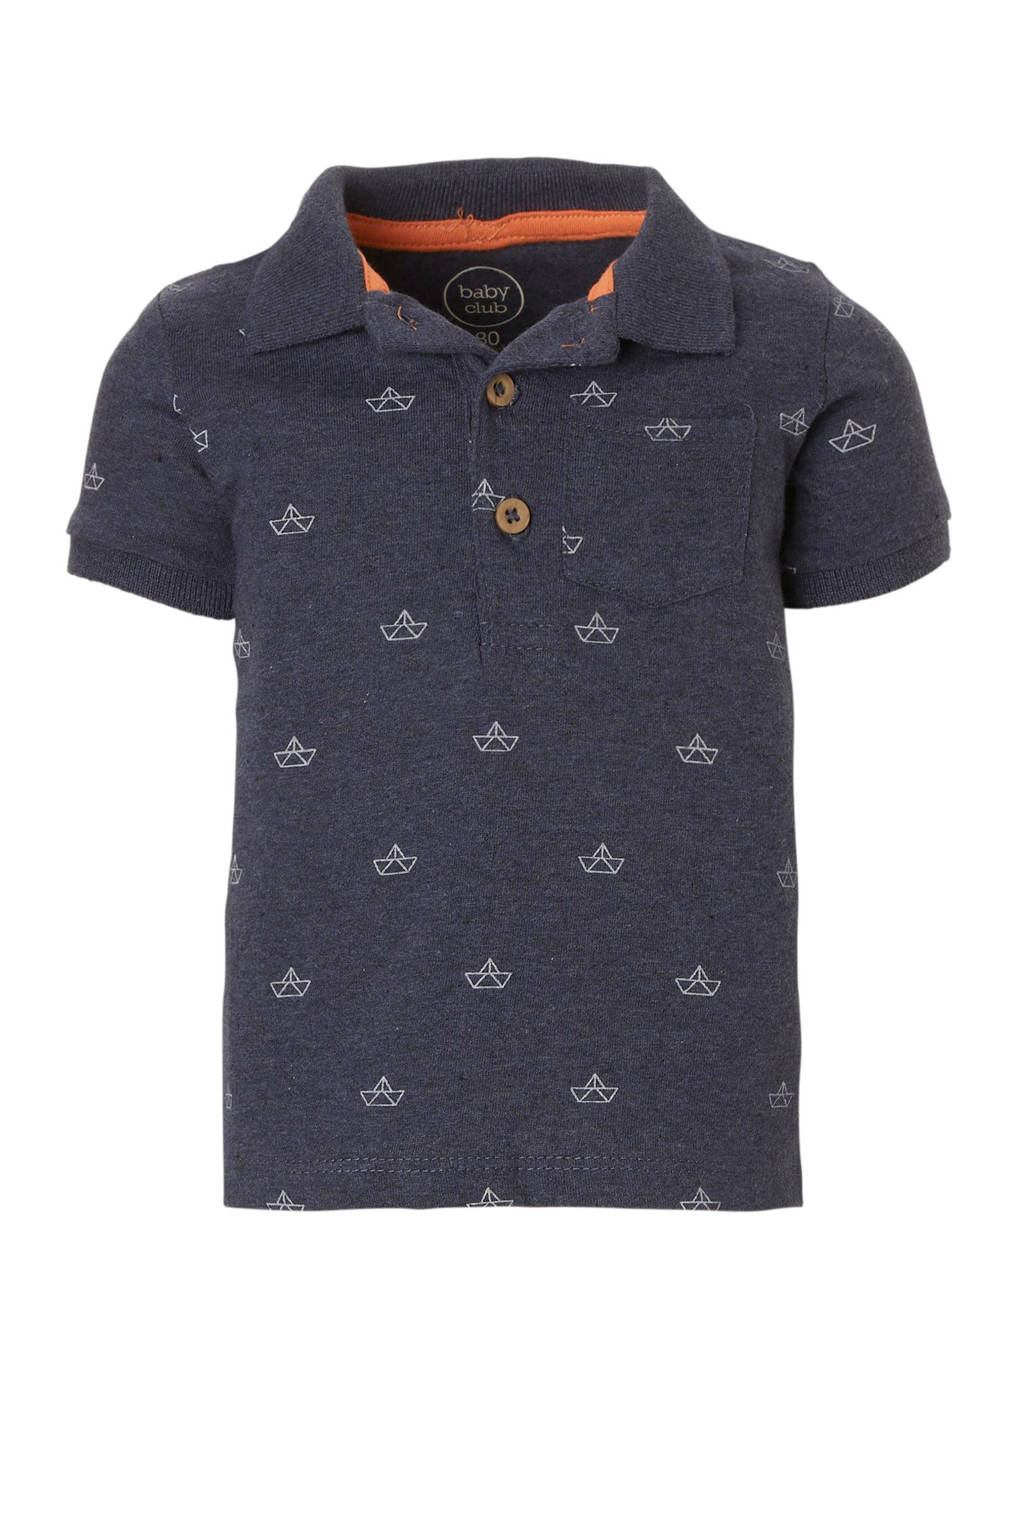 C&A Baby Club polo met all-over print blauw, Blauw